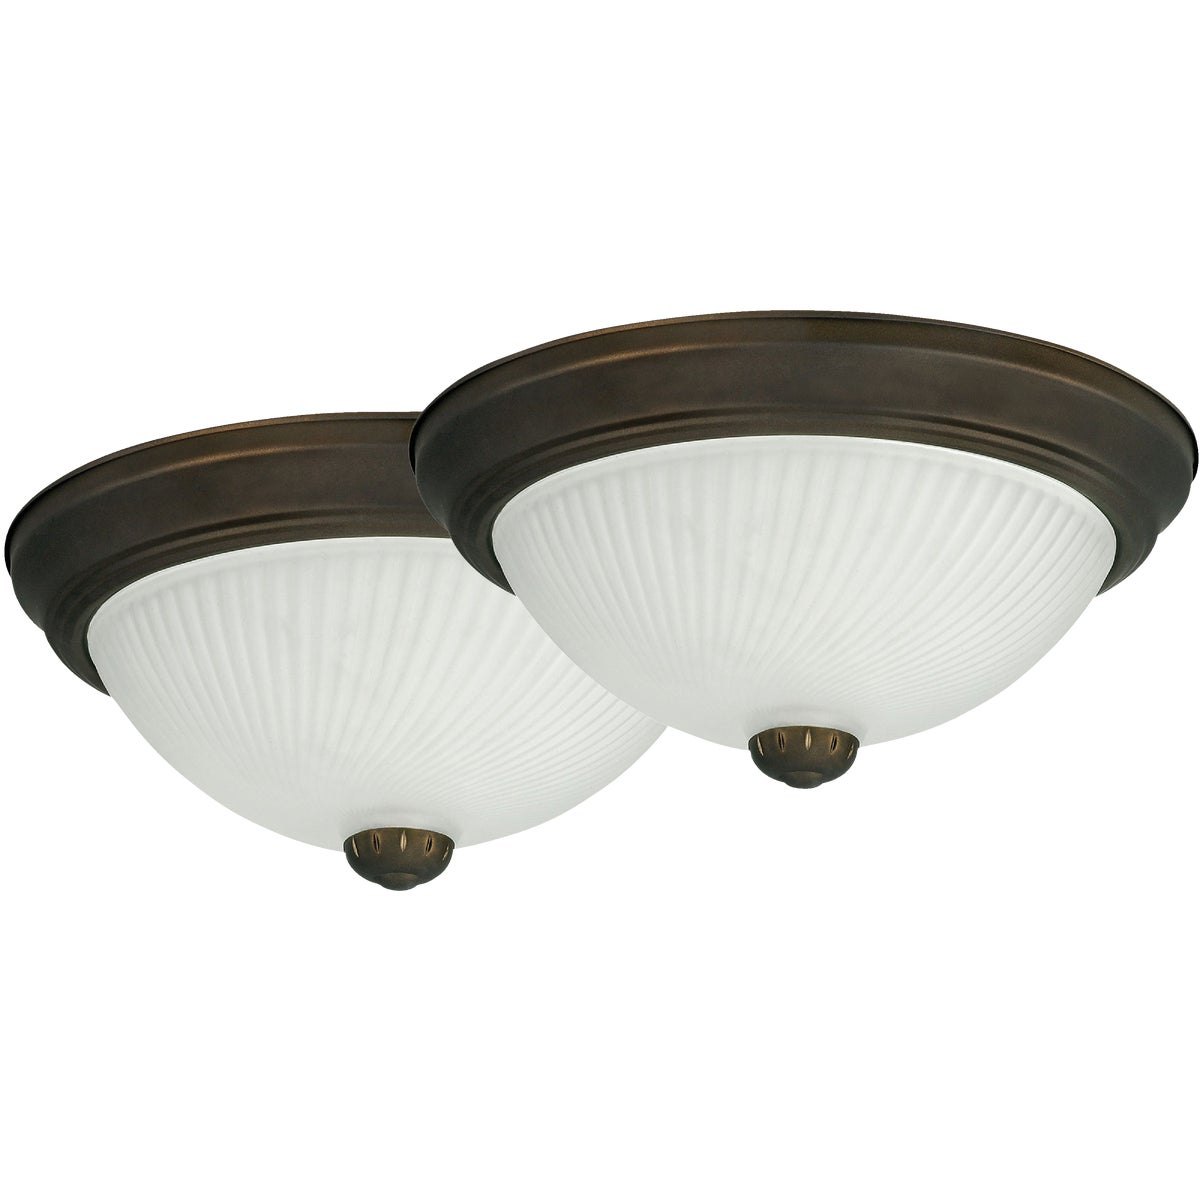 2PK ORB CEILING FIXTURE - IFM211TORB by Canarm Gs